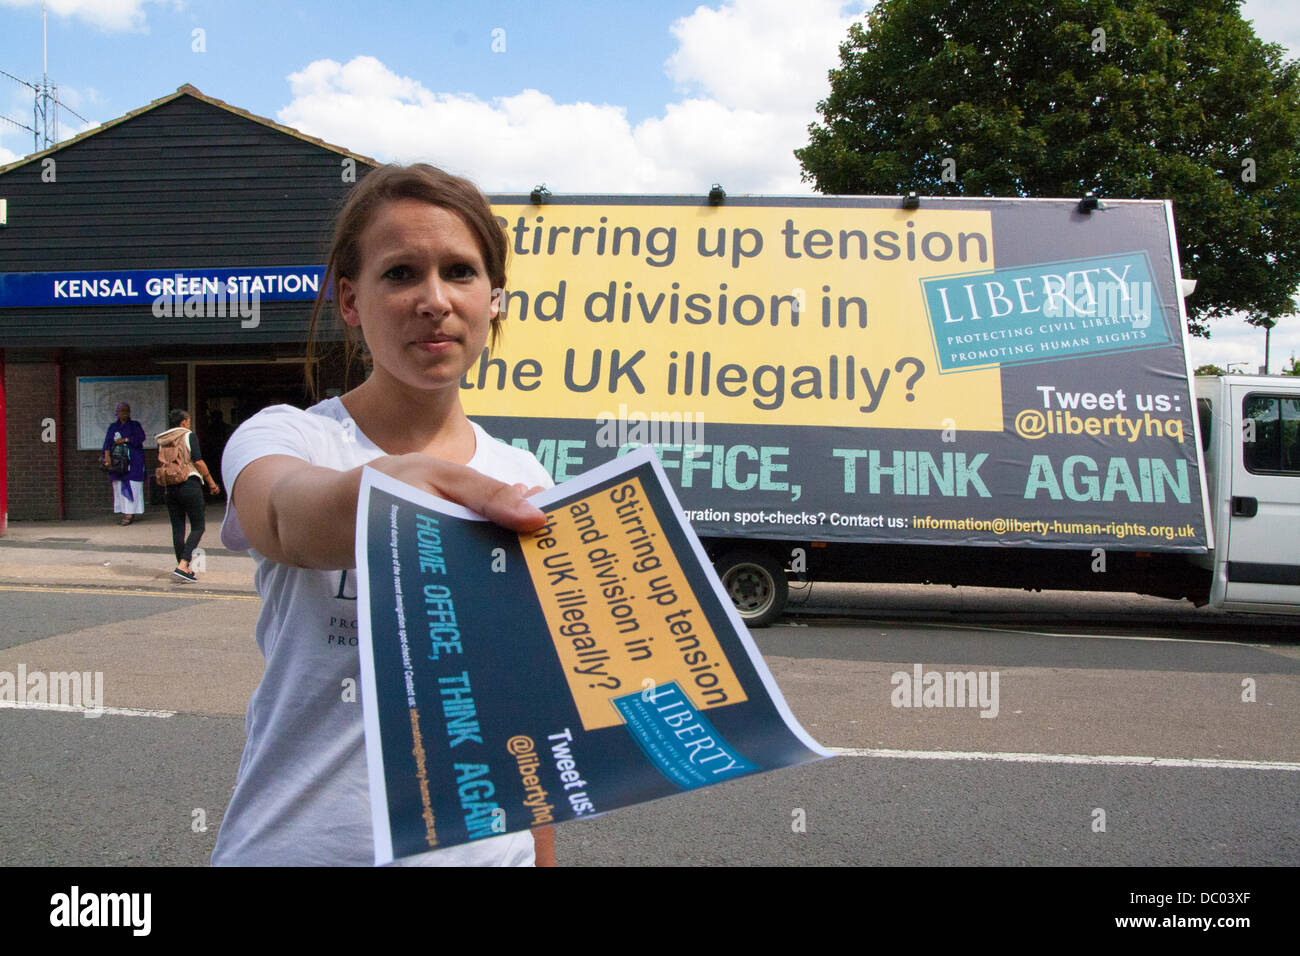 London, UK. 6th Aug, 2013. Liberty's Anti_racist van parked up outside Kensal Green Tube station in response - Stock Image